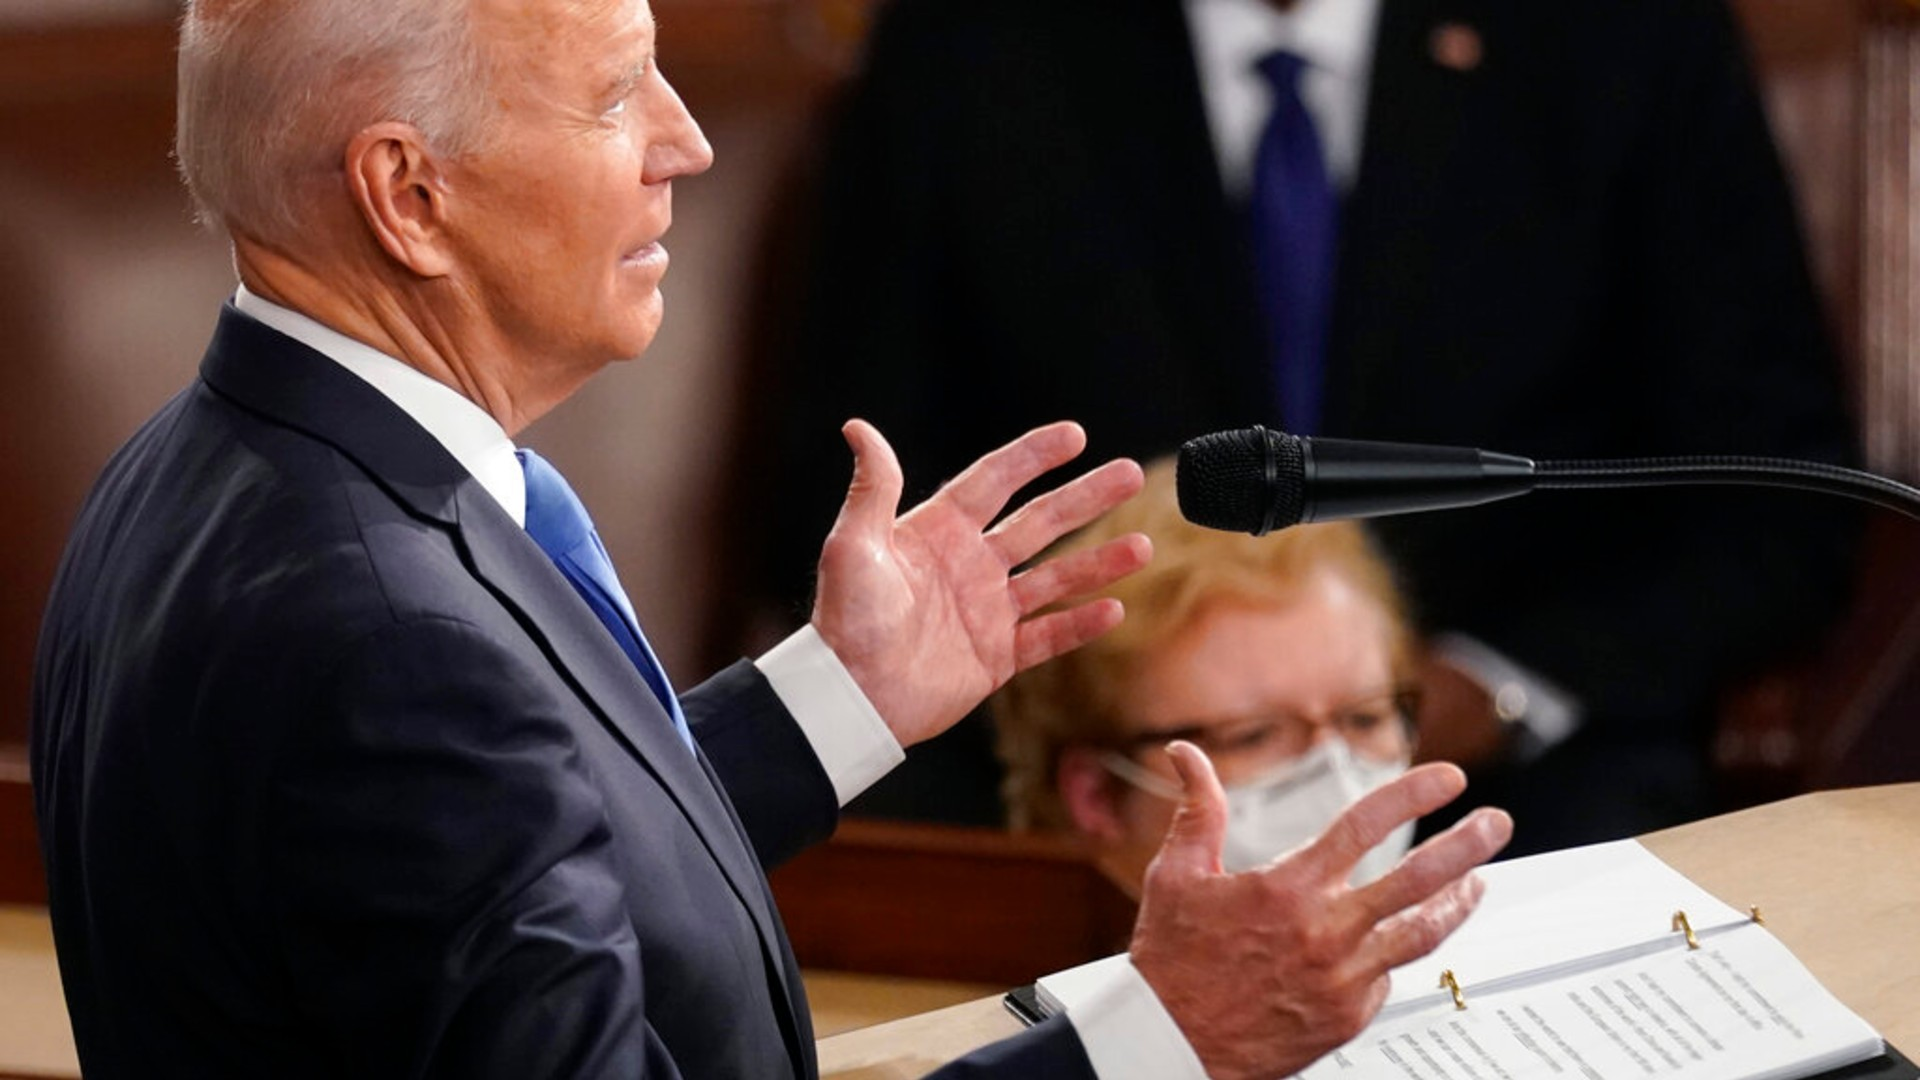 In this April 28, 2021, photo, President Joe Biden speaks to a joint session of Congress in the House Chamber at the U.S. Capitol in Washington. (AP Photo/Andrew Harnik, Pool)